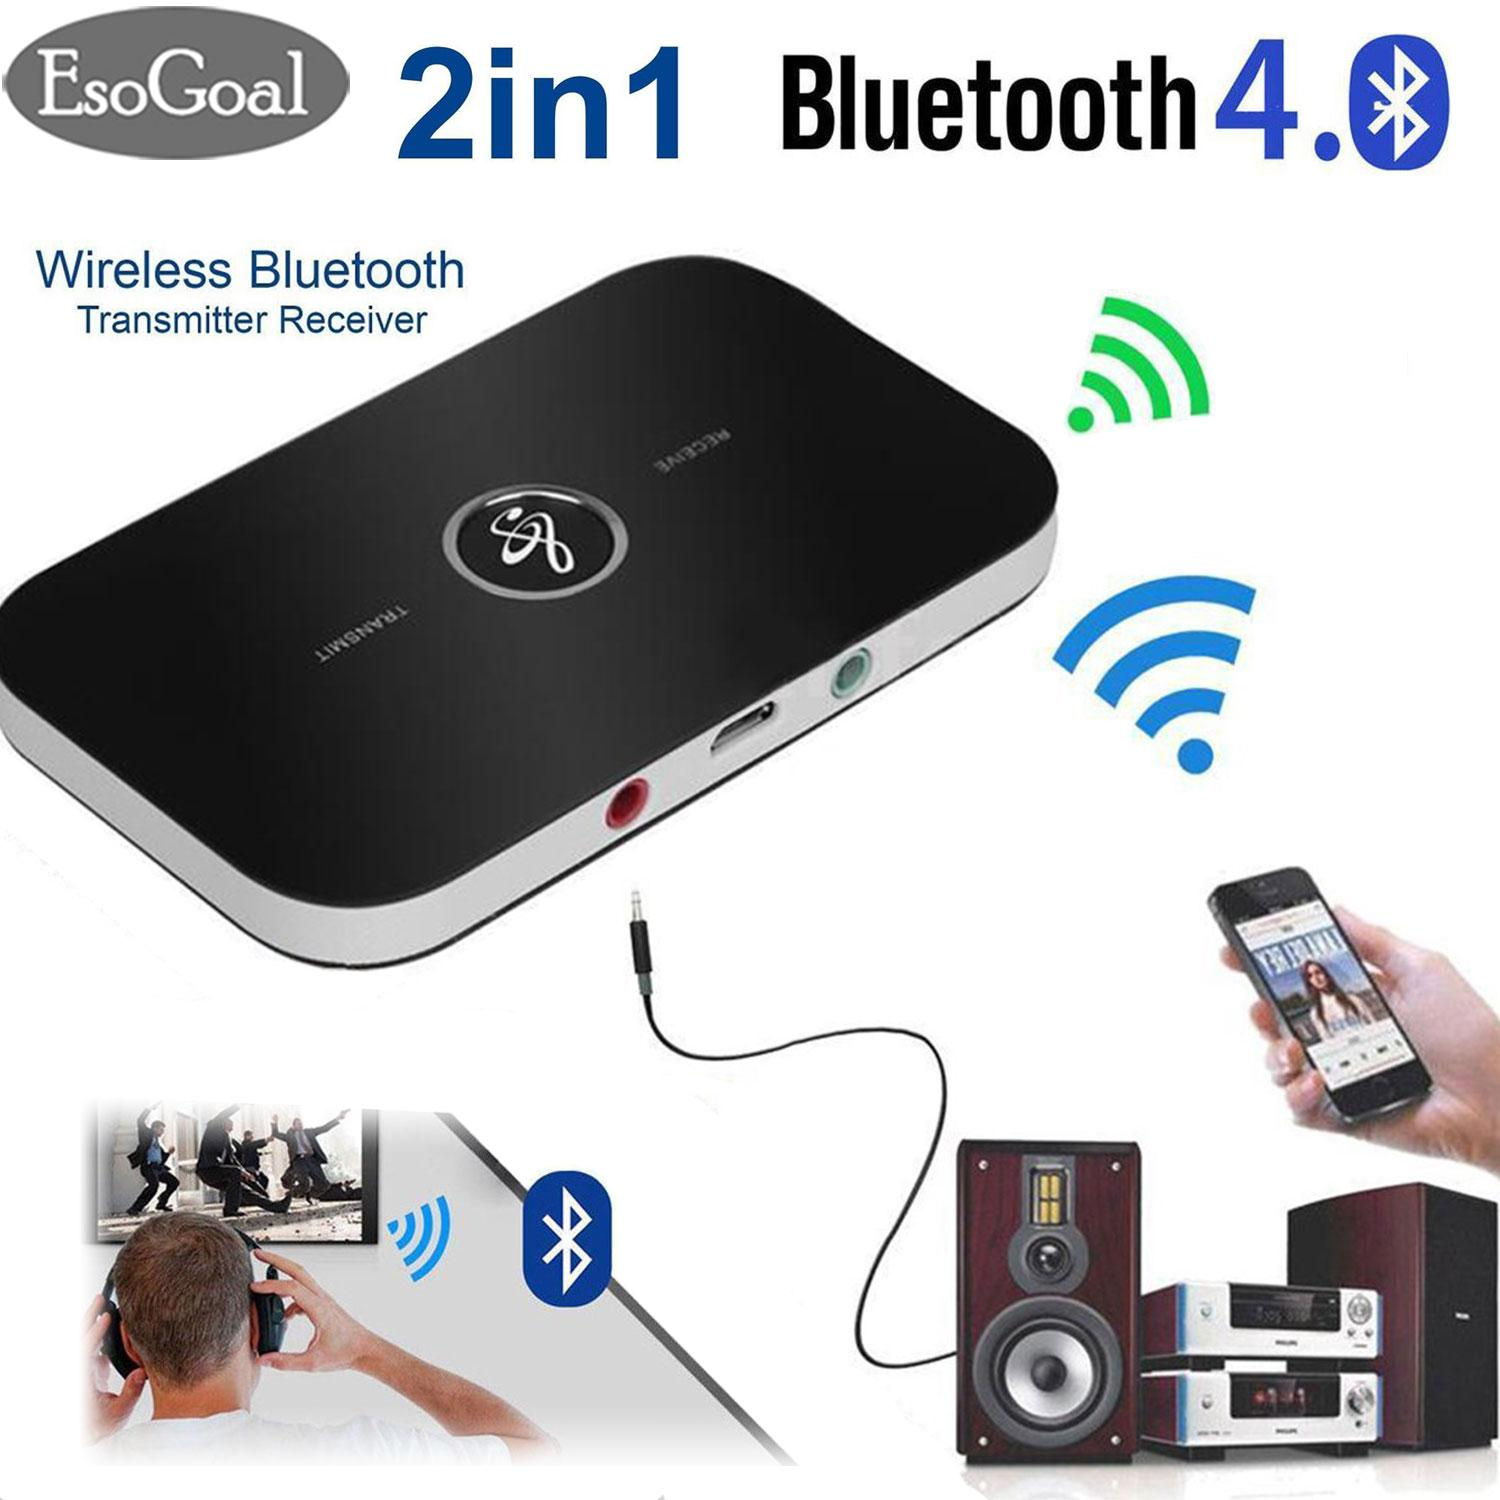 EsoGoal 2 in 1 Bluetooth Transmitter and Receiver Bluetooth Adapter  Wireless Transmitter Receiver Wireless A2DP Bluetooth Stereo Audio Adapter